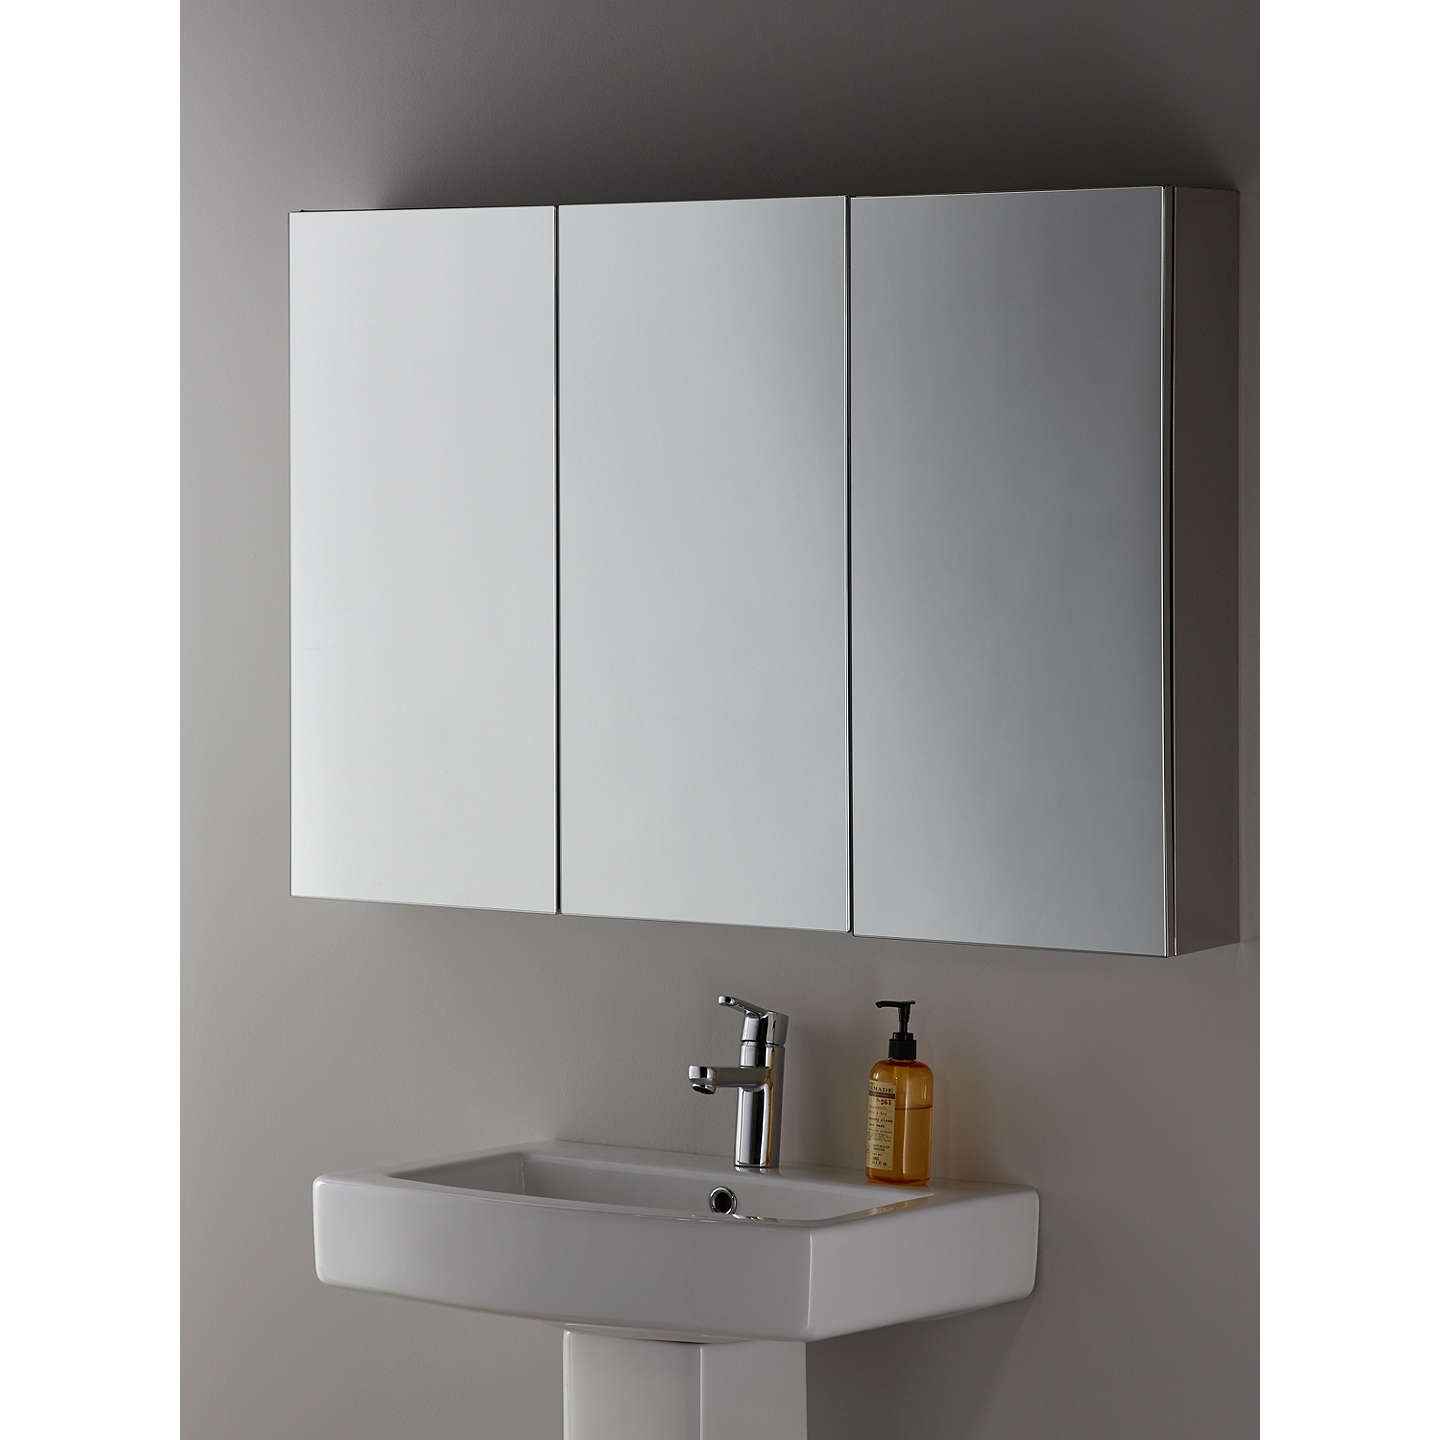 john lewis bathroom cabinets lewis mirrored bathroom cabinet at lewis 18030